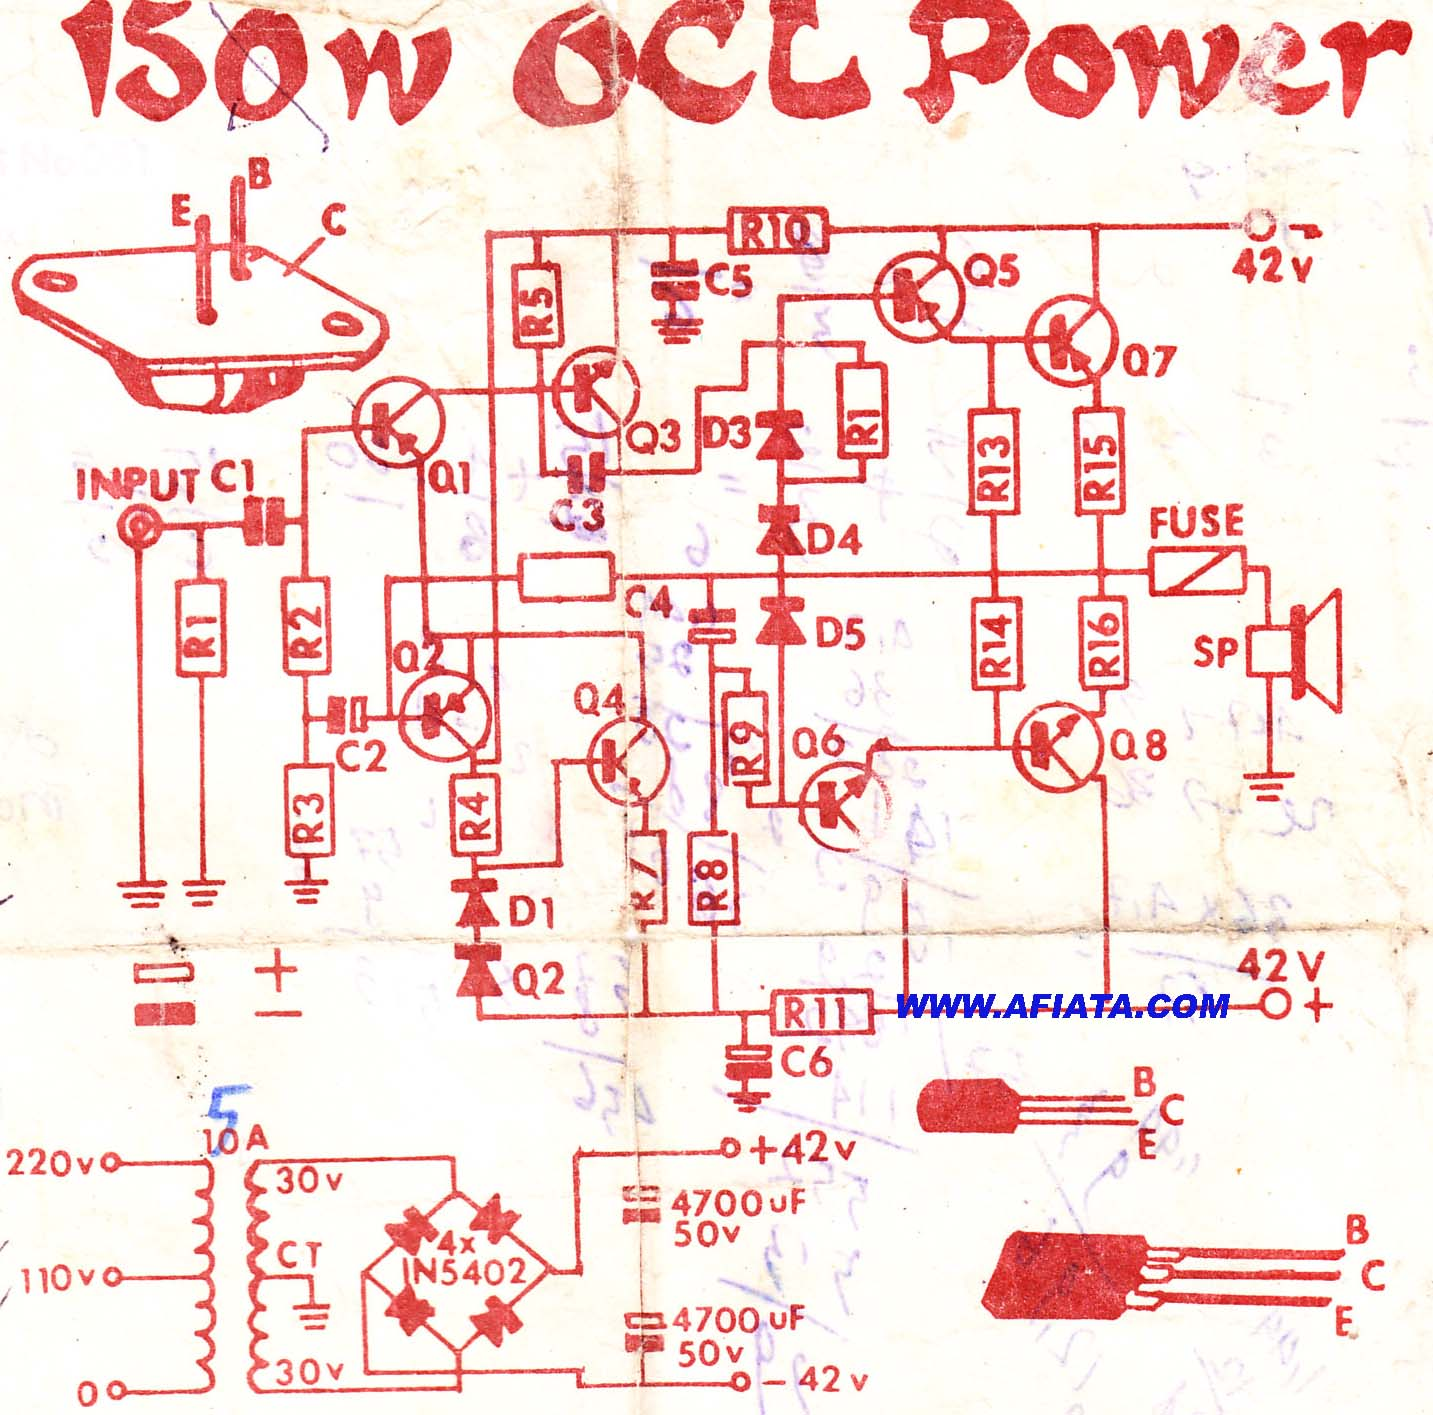 Circuit Diagram Of Variable Power Supply Using Lm317 Wiring Additionally In 2n3055 Mj2955 Audio Amplifier Electronic Circuits Projects